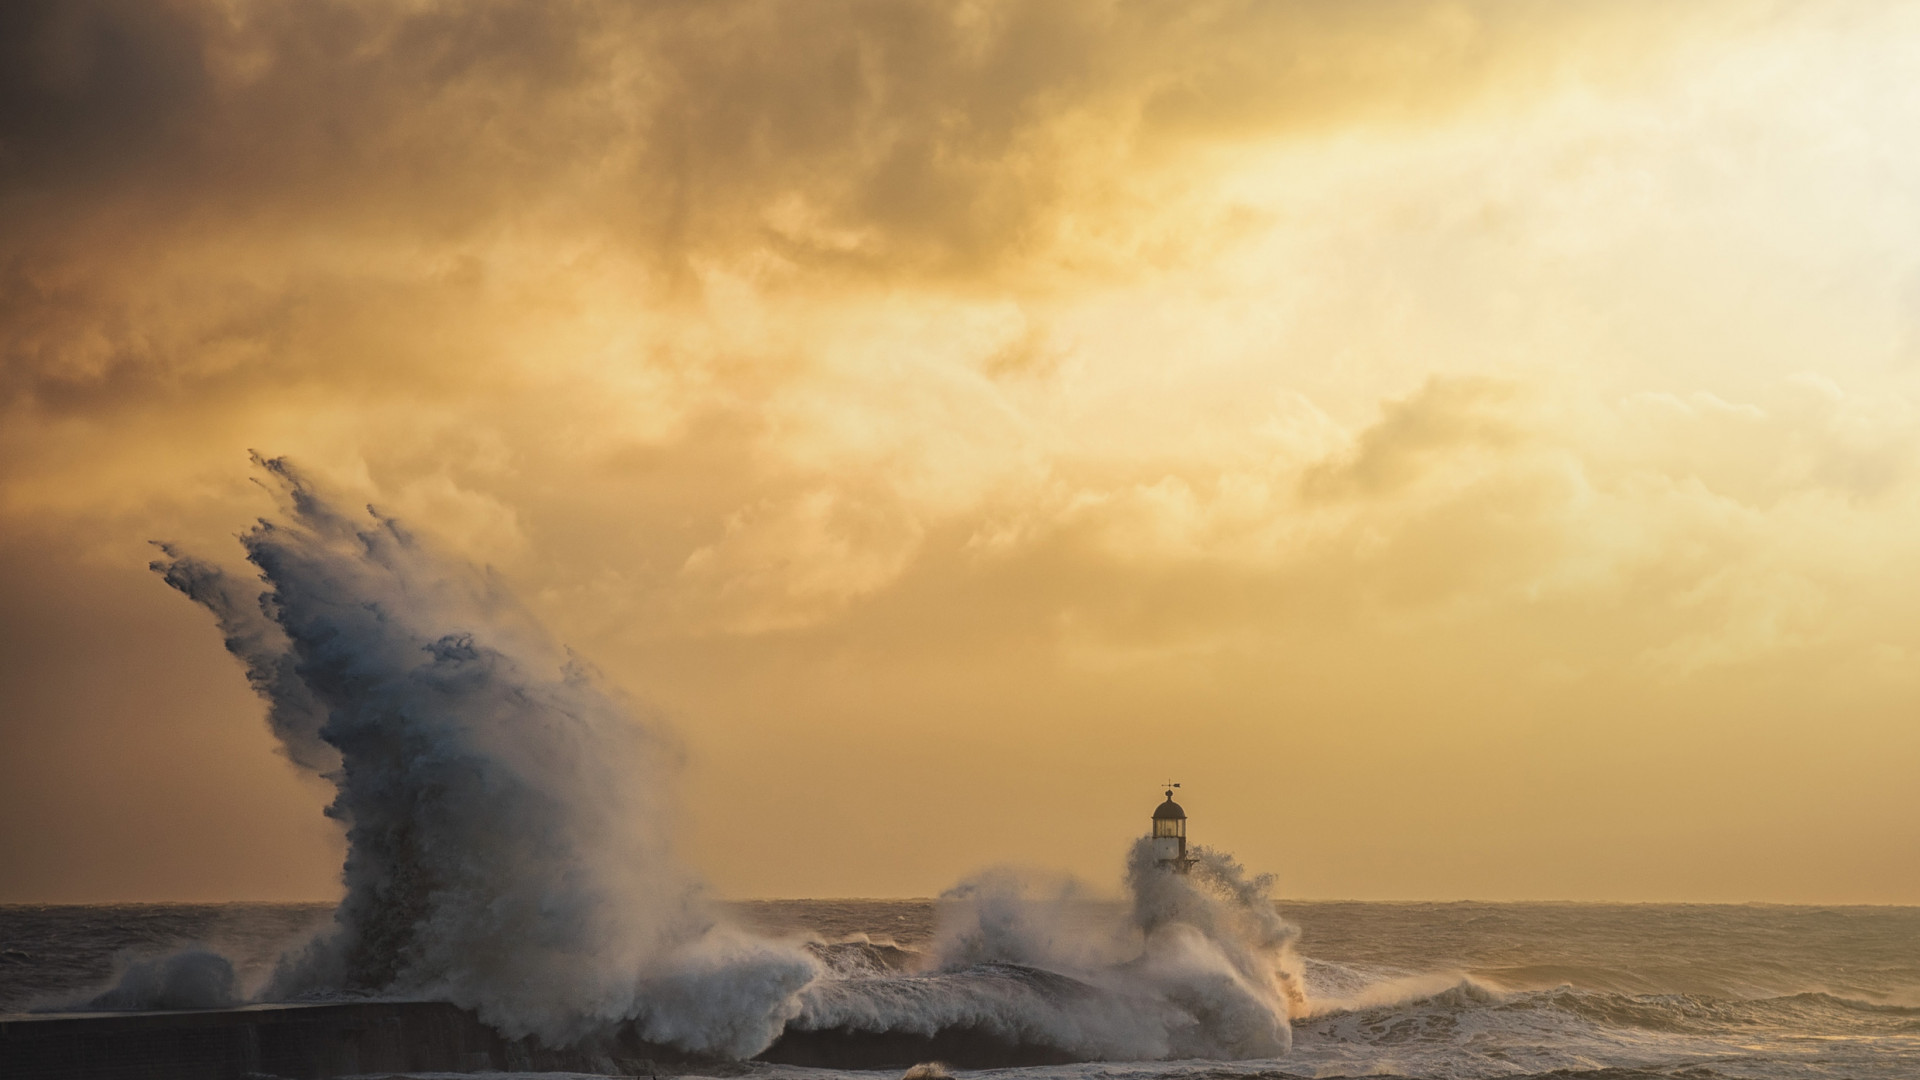 Huge waves hit the pier wall and lighthouse at Seaham Harbour, Durham